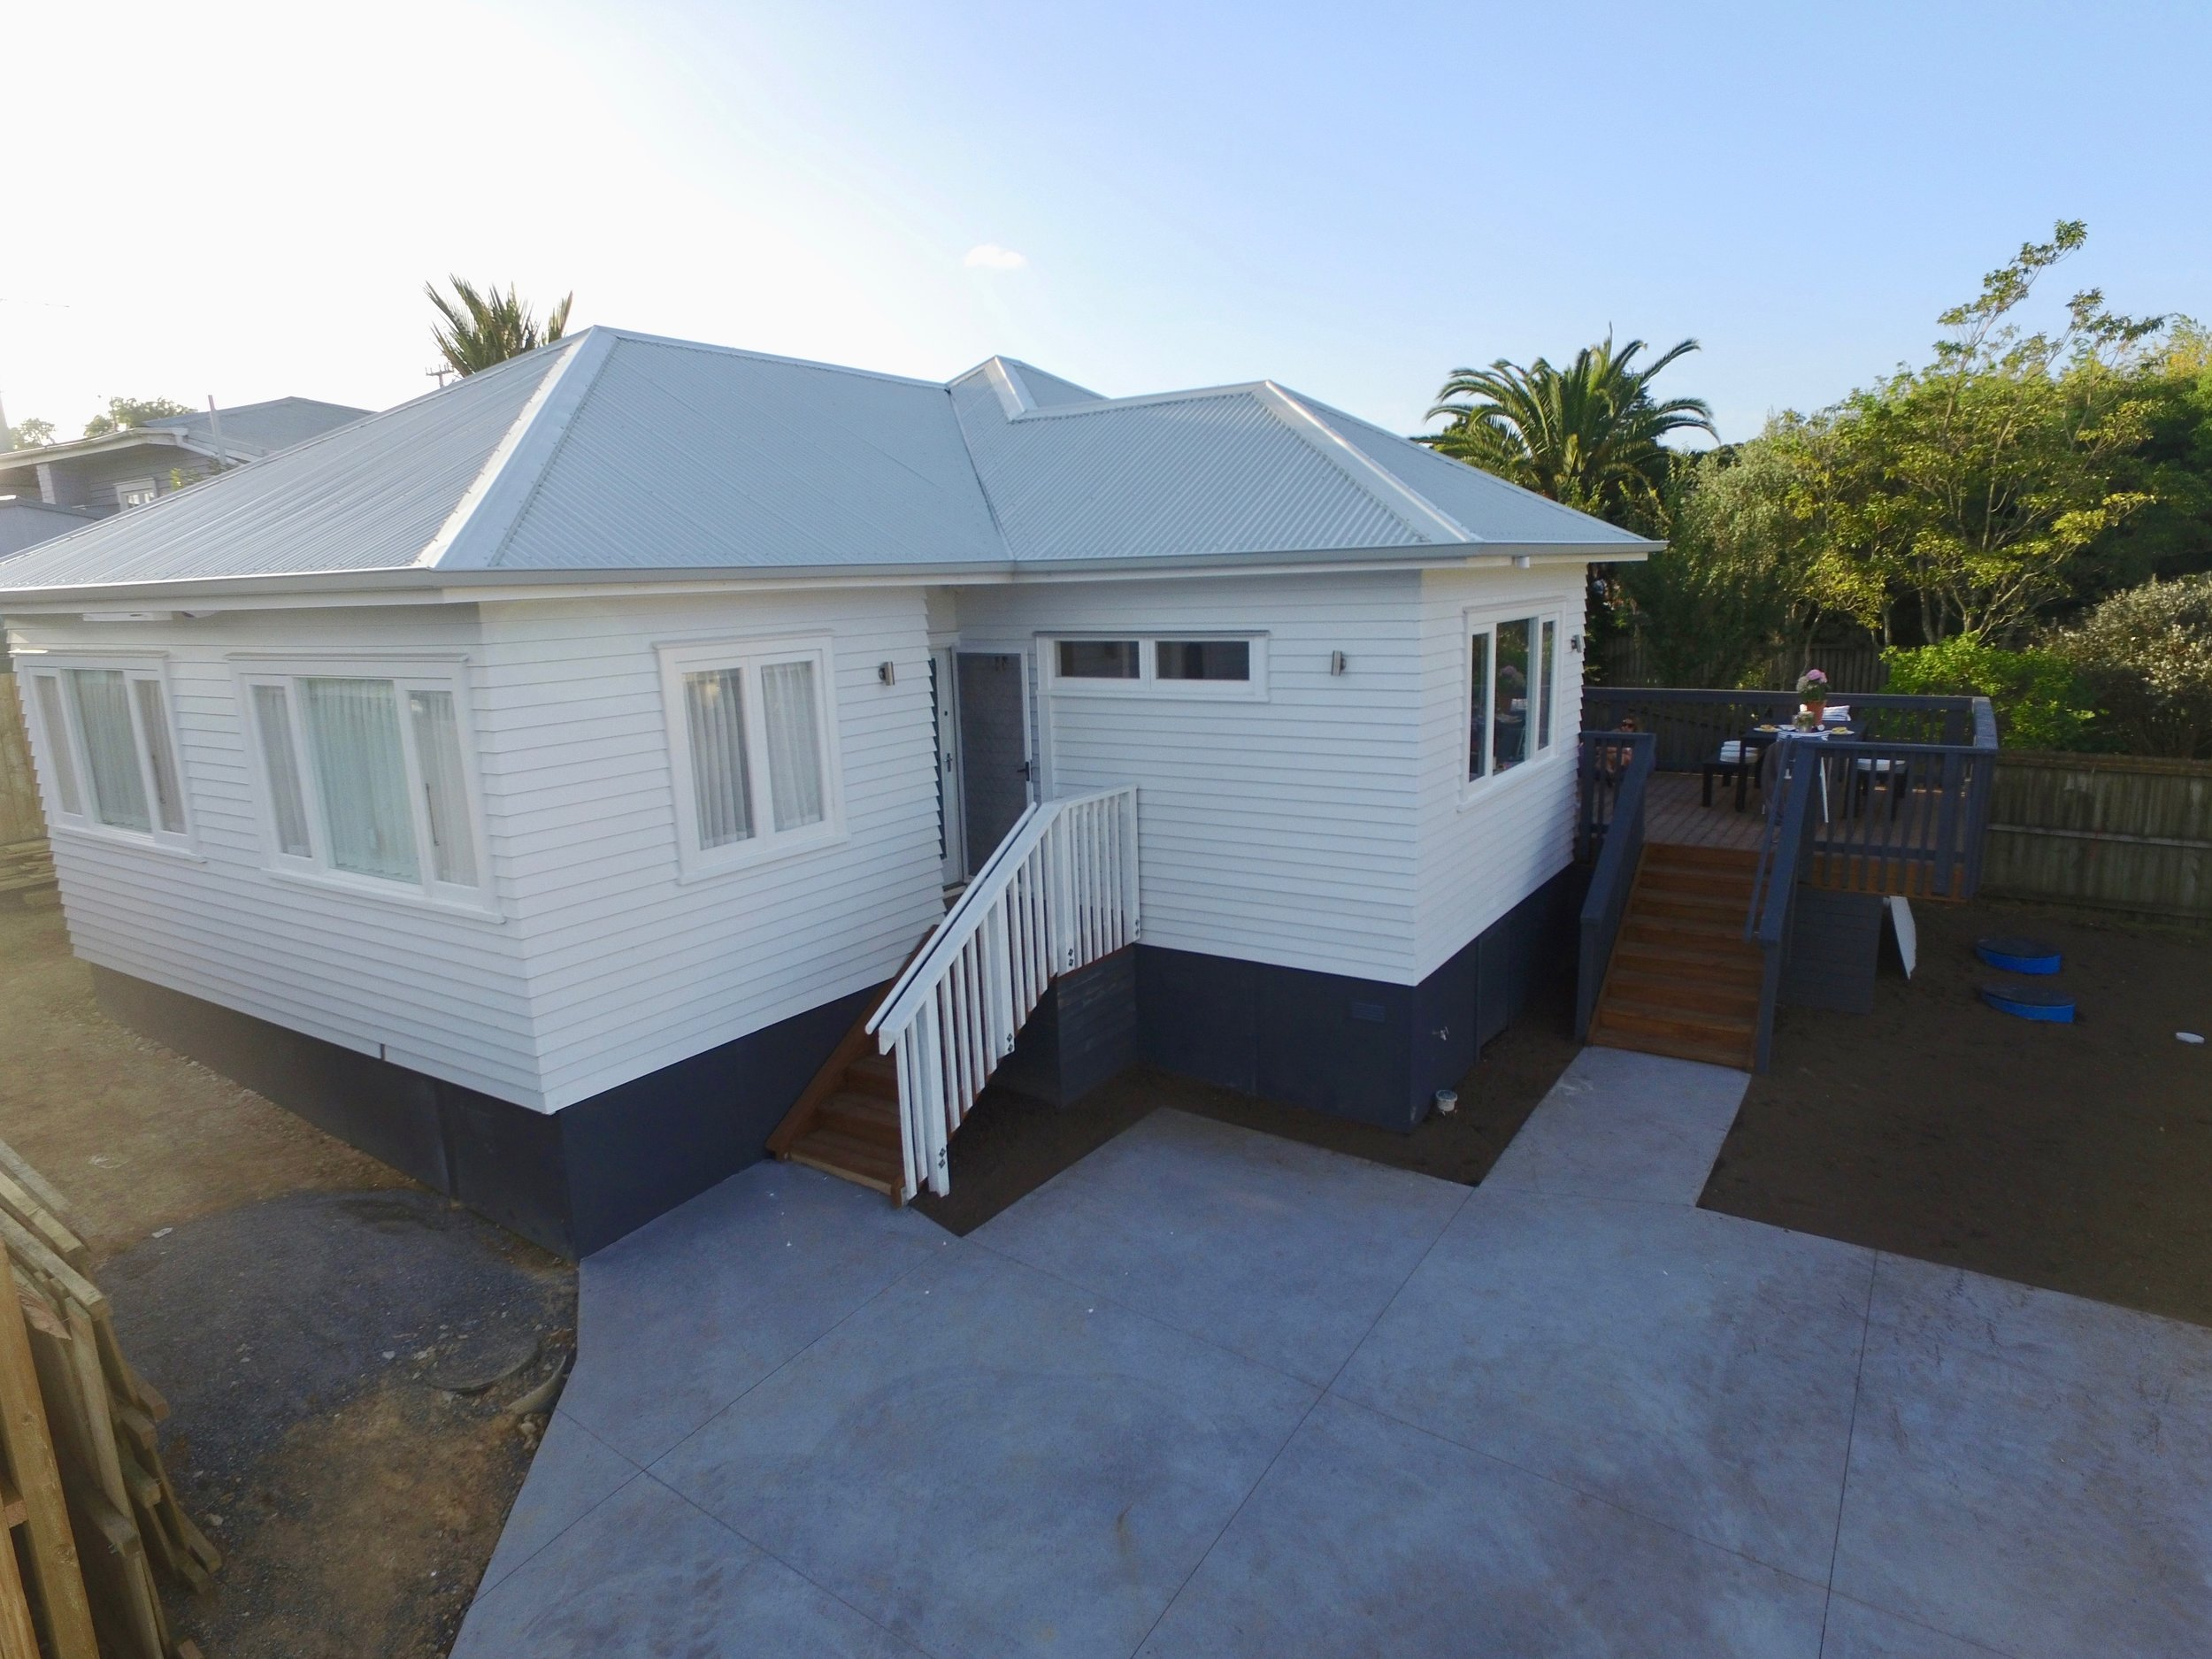 Pearson and Projects Exterior Project Relocatable Deck + Deck - 14.jpg